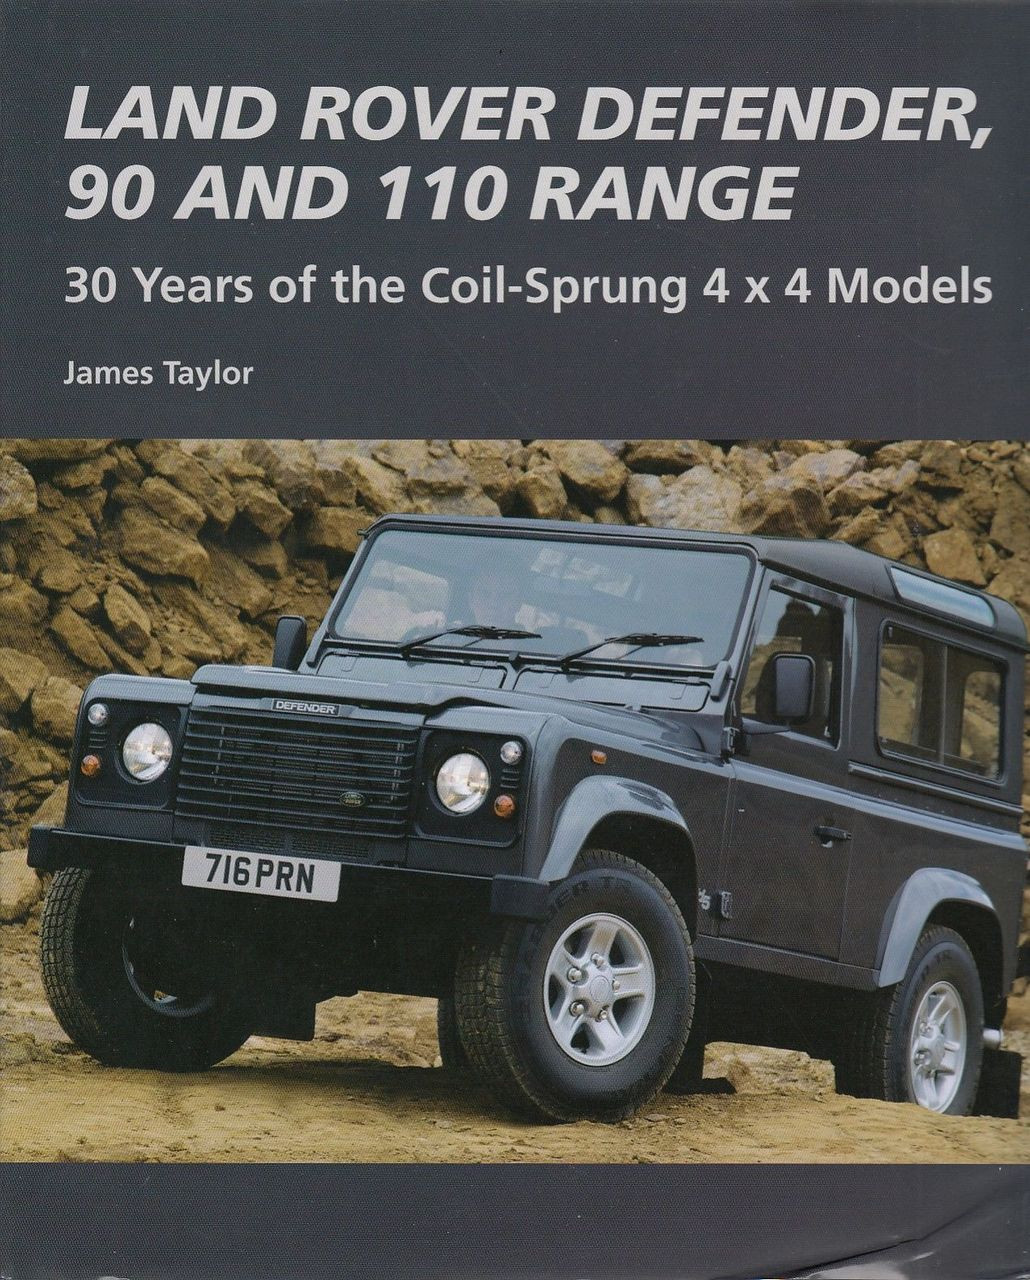 land rover defender, 90 and 110 range 30 years of the coil sprung 4 x 4